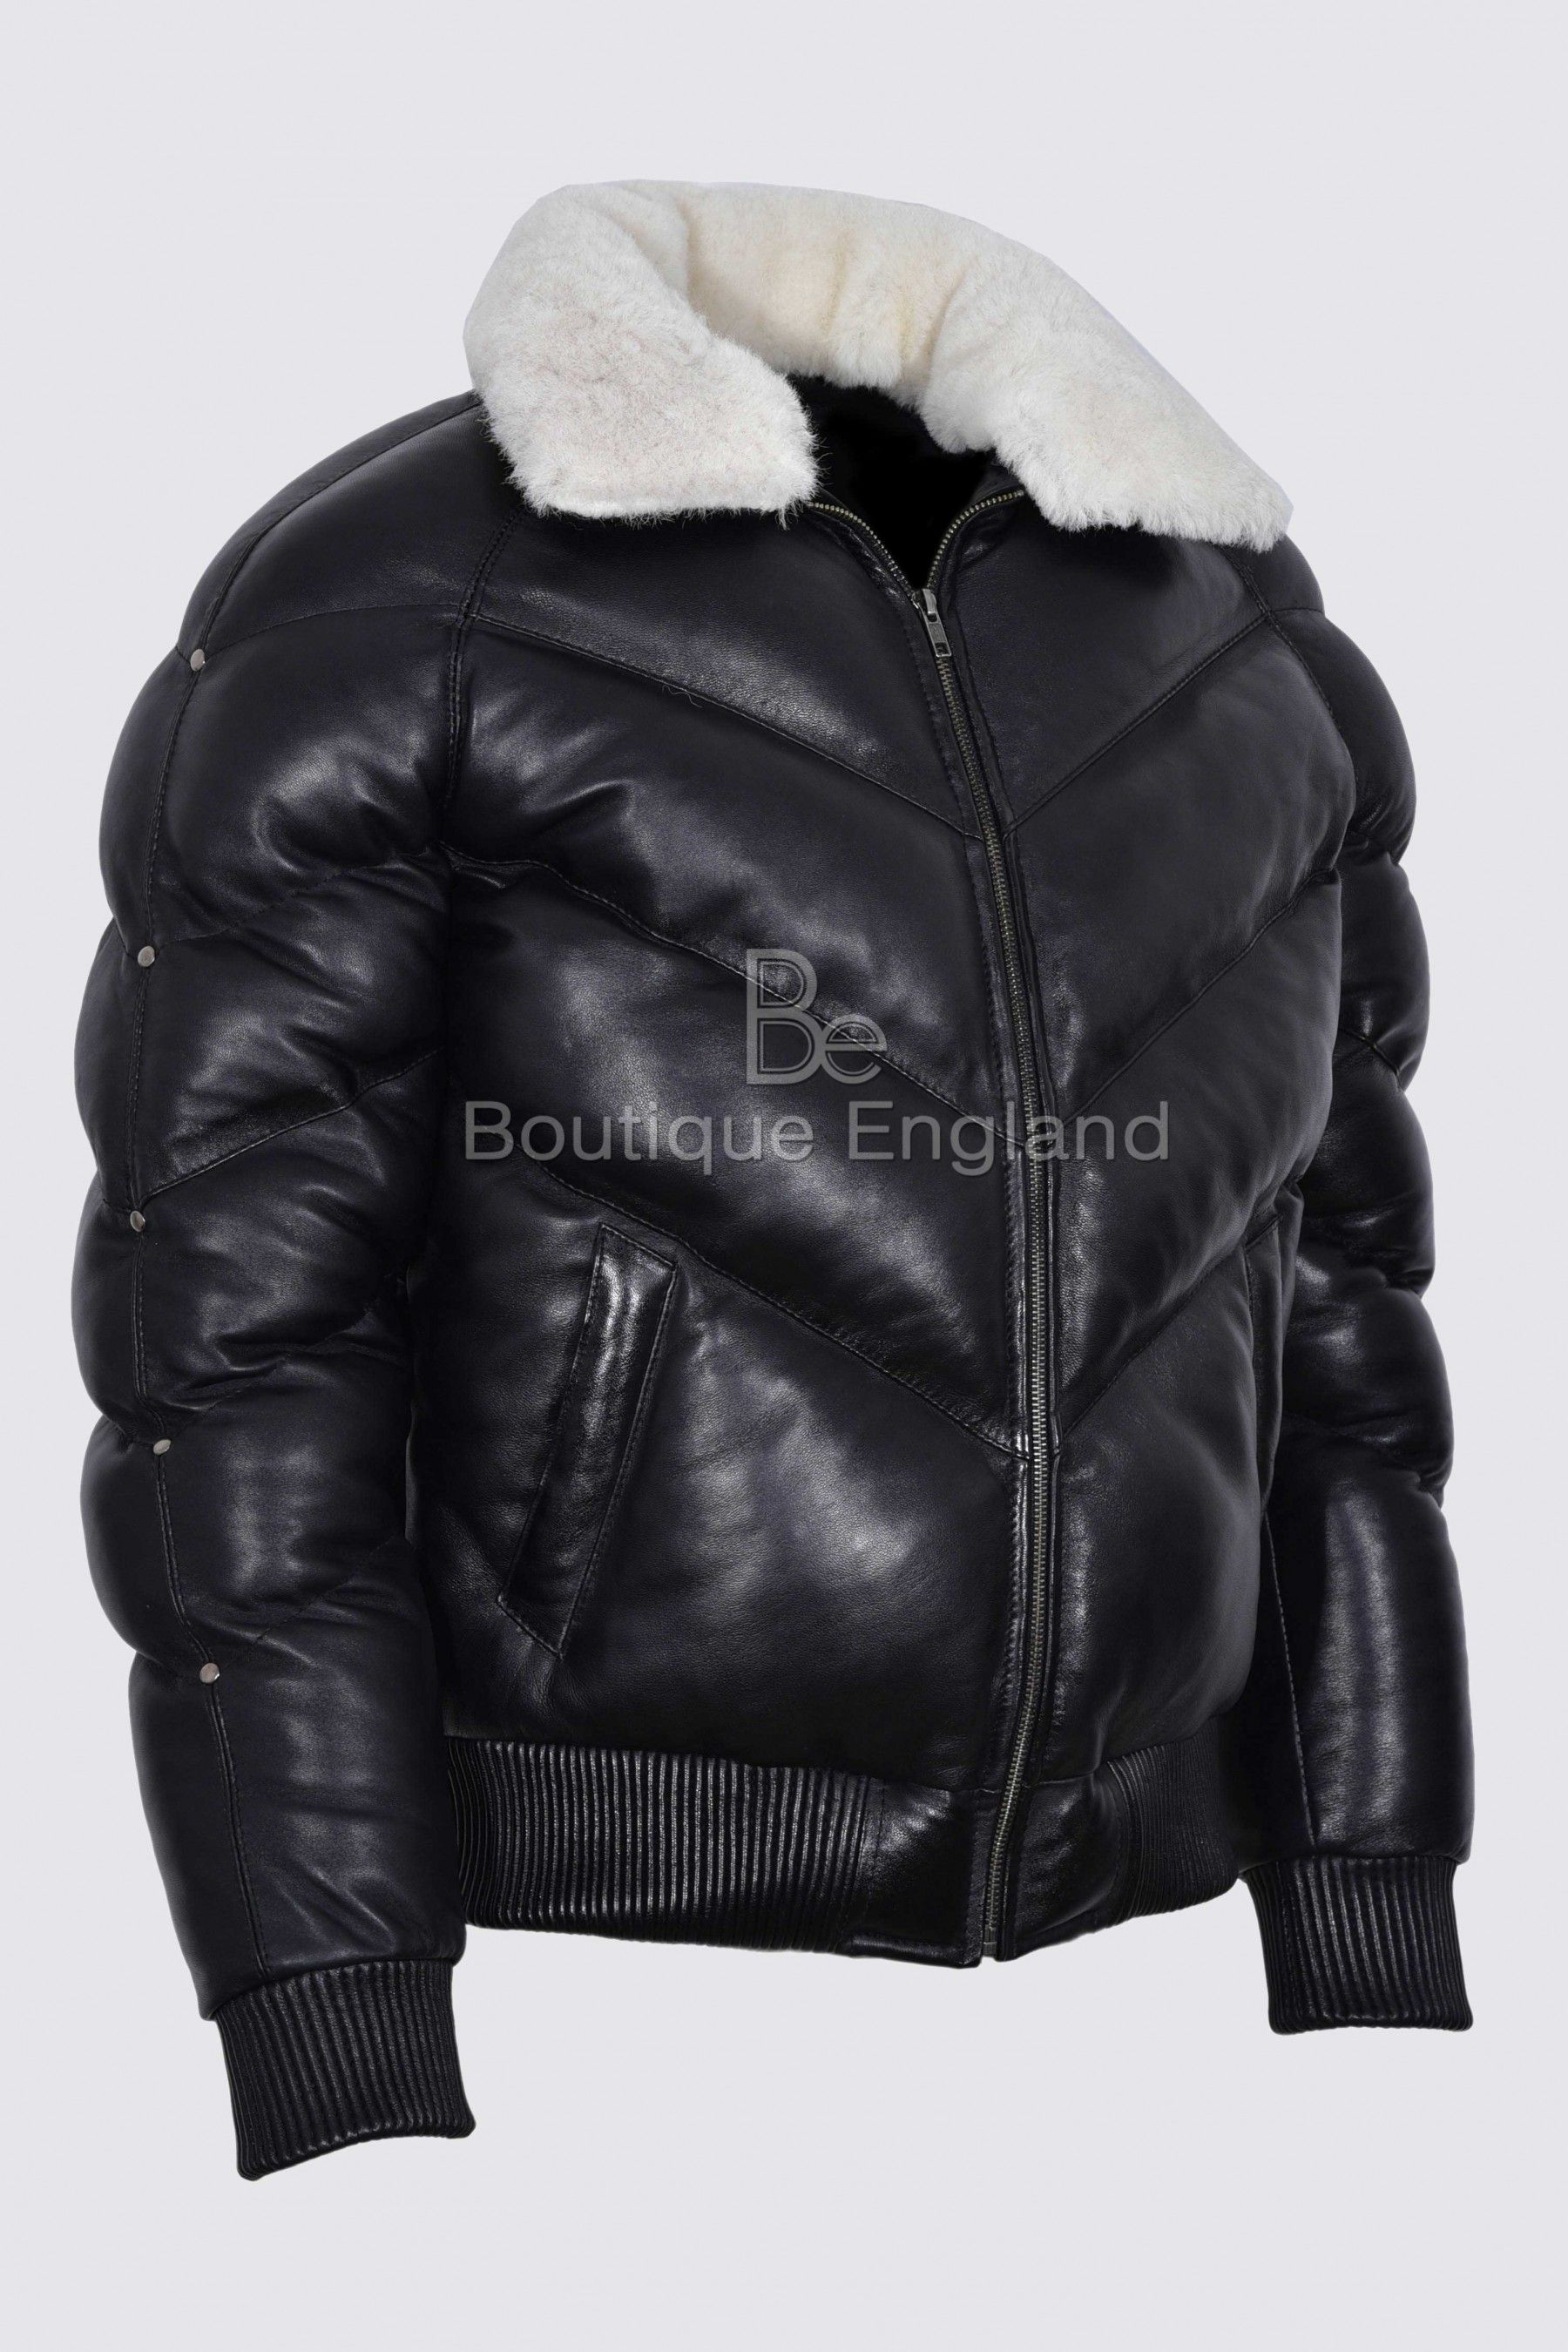 ACE Men's Puffer Black Real Leather Jacket White Shearling